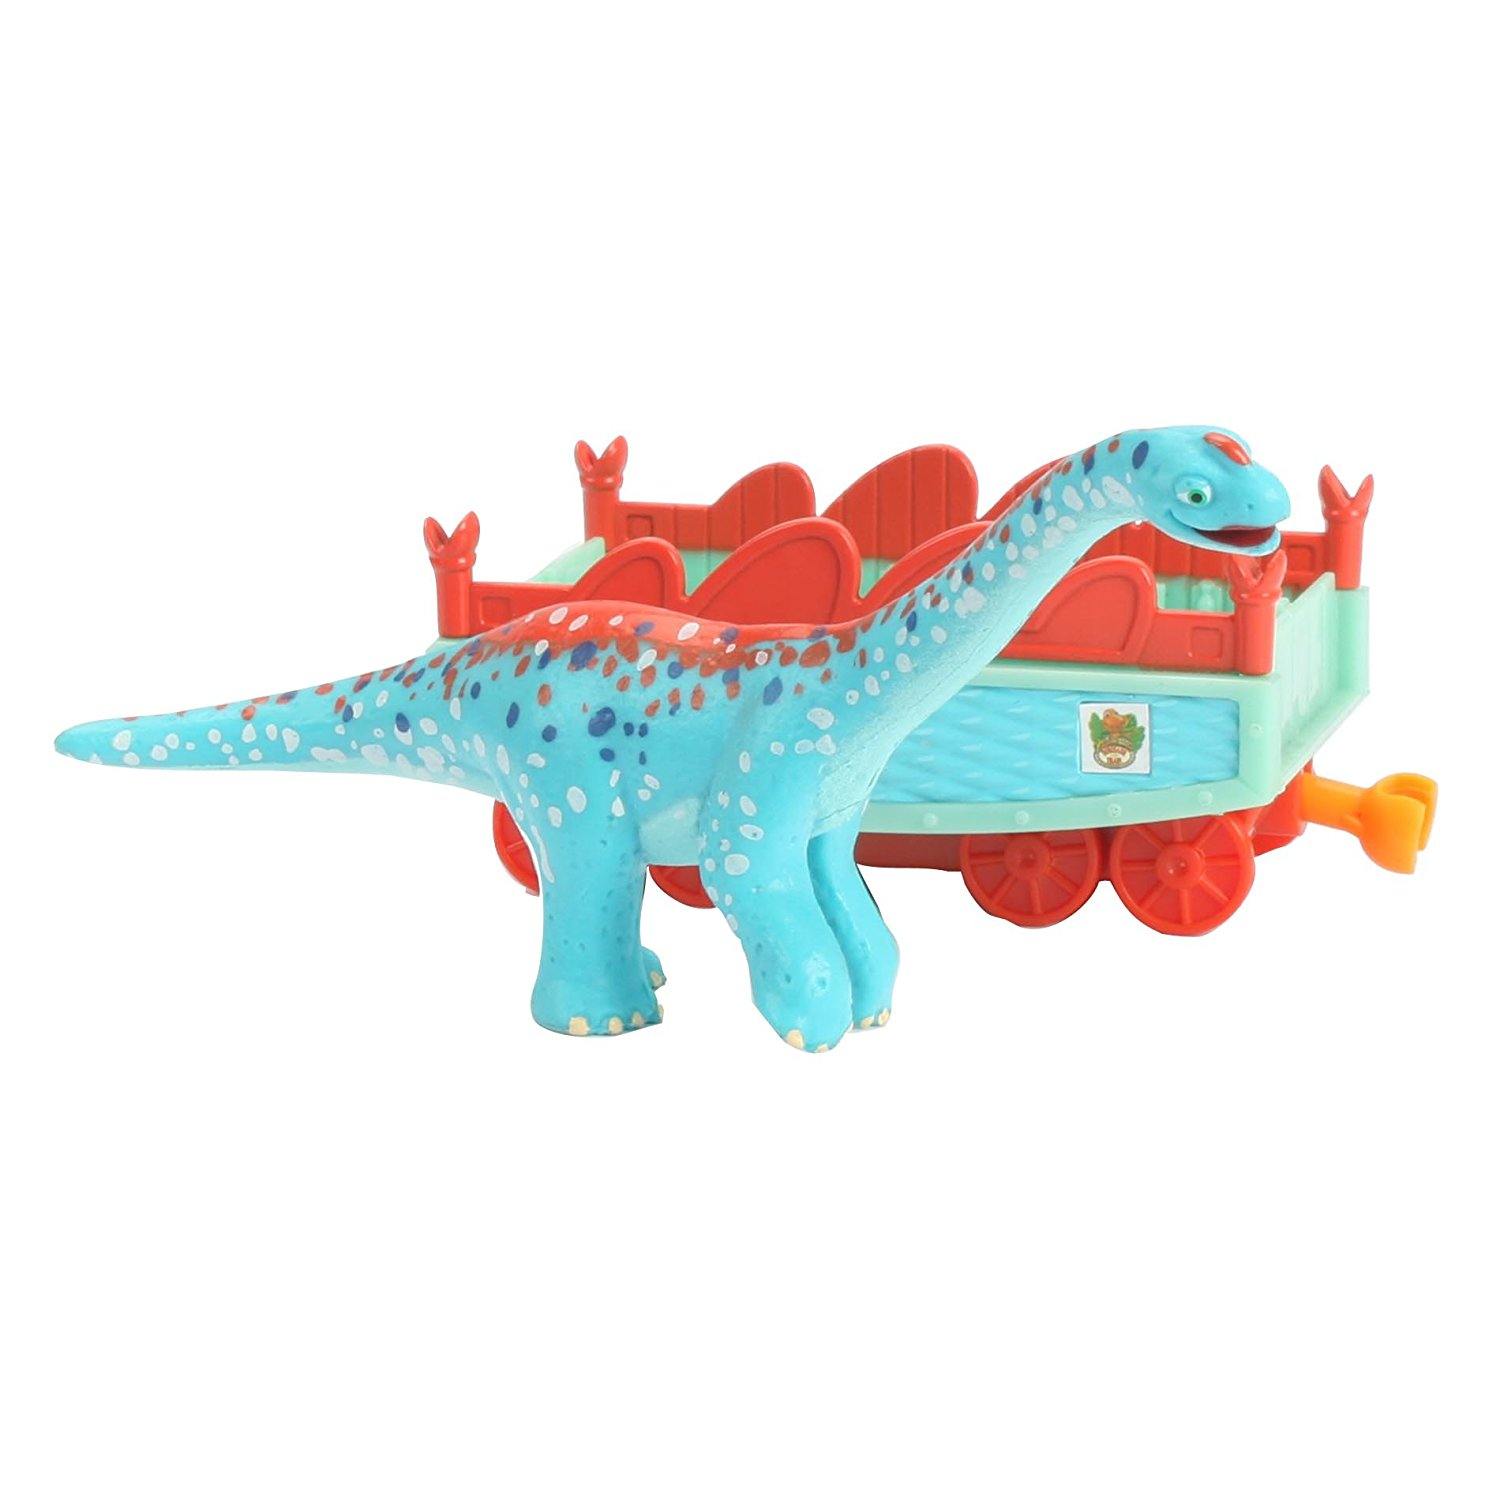 Learning Curve Dinosaur Train Collectible Dinosaur With Train Car - My Friends Are Quadrapeds: Arnie